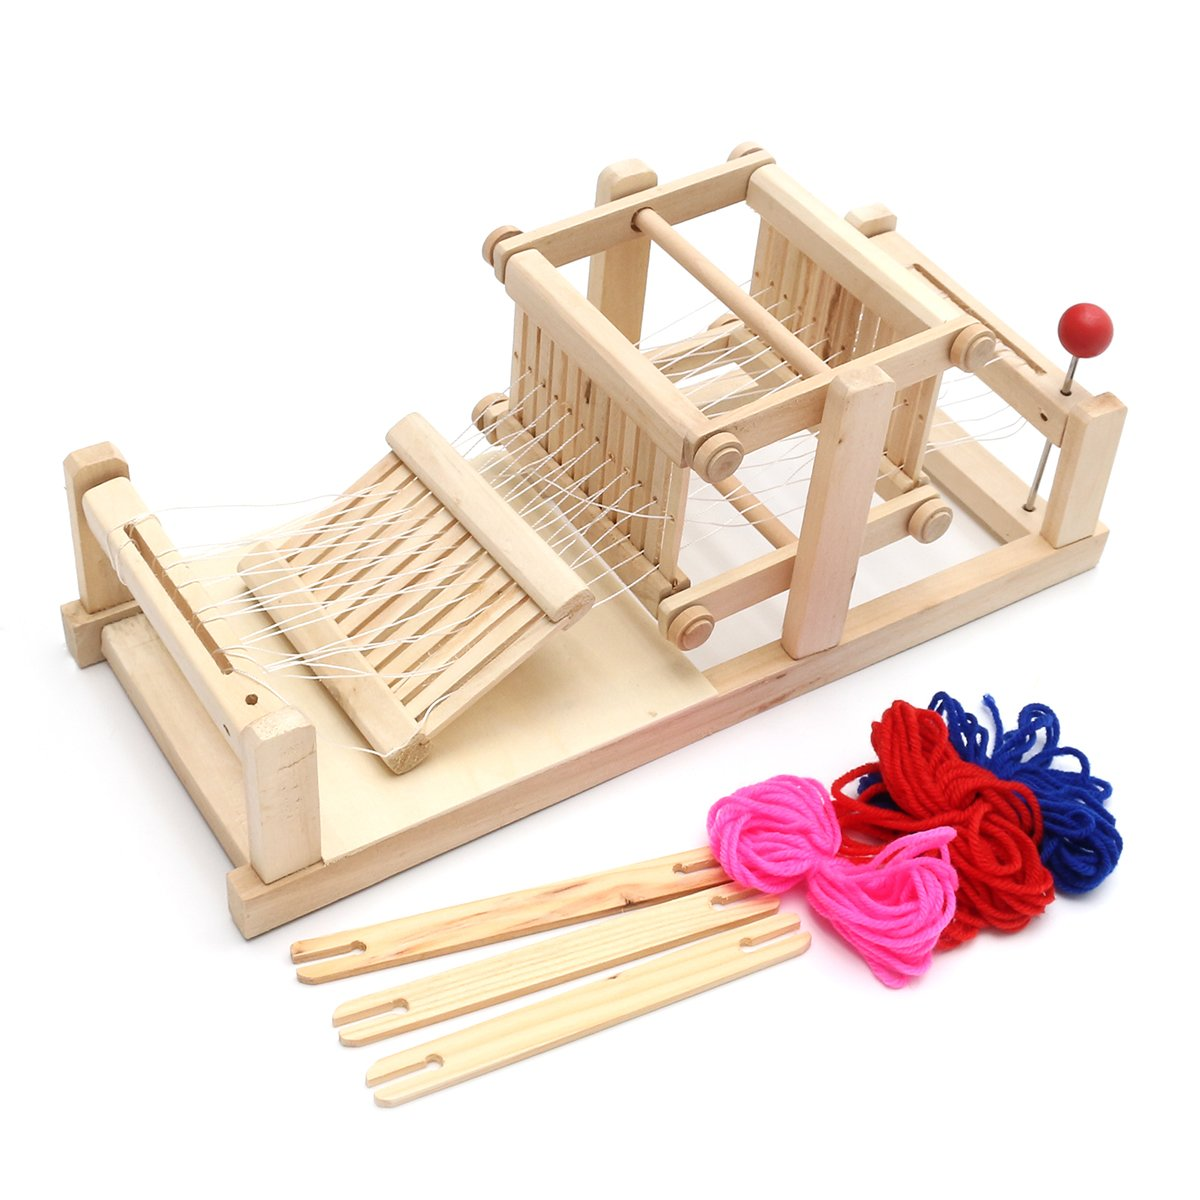 KINGSO Loom Wooden Table Weaving Toy with Accessories Hand Craft Toy for Kids KINGSOokiuhg3043